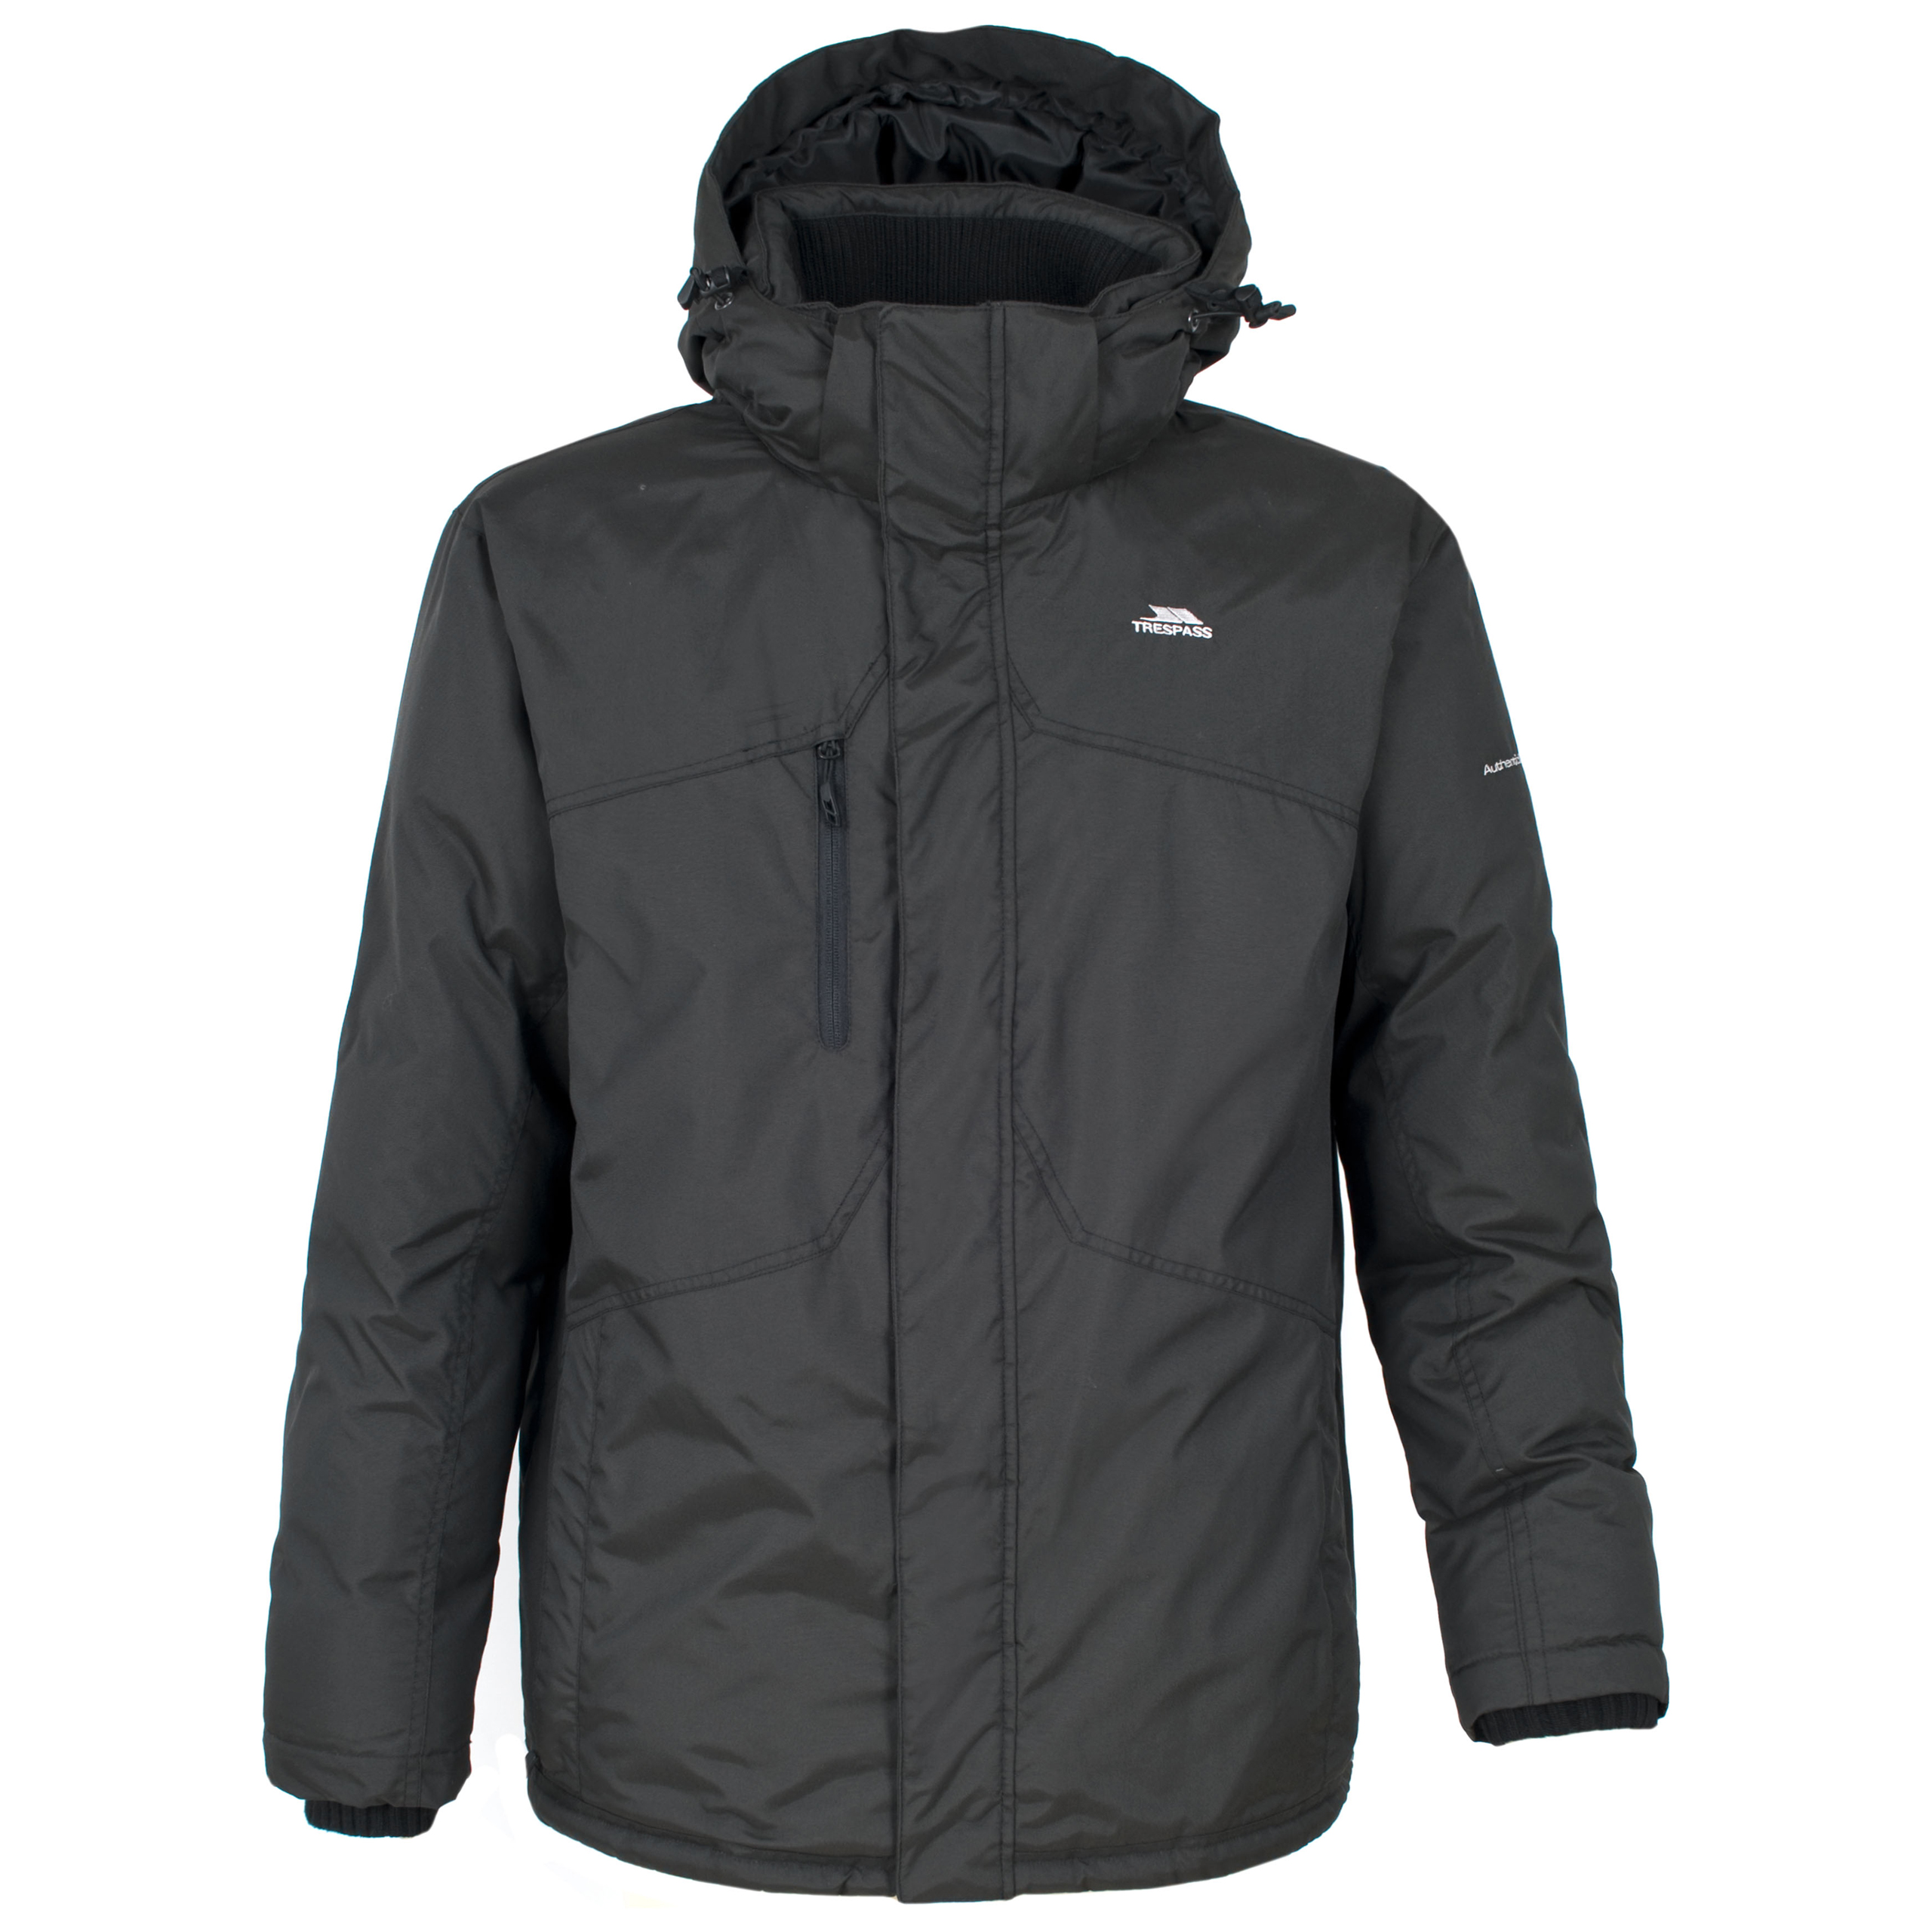 Find great deals on eBay for warm waterproof jacket. Shop with confidence.